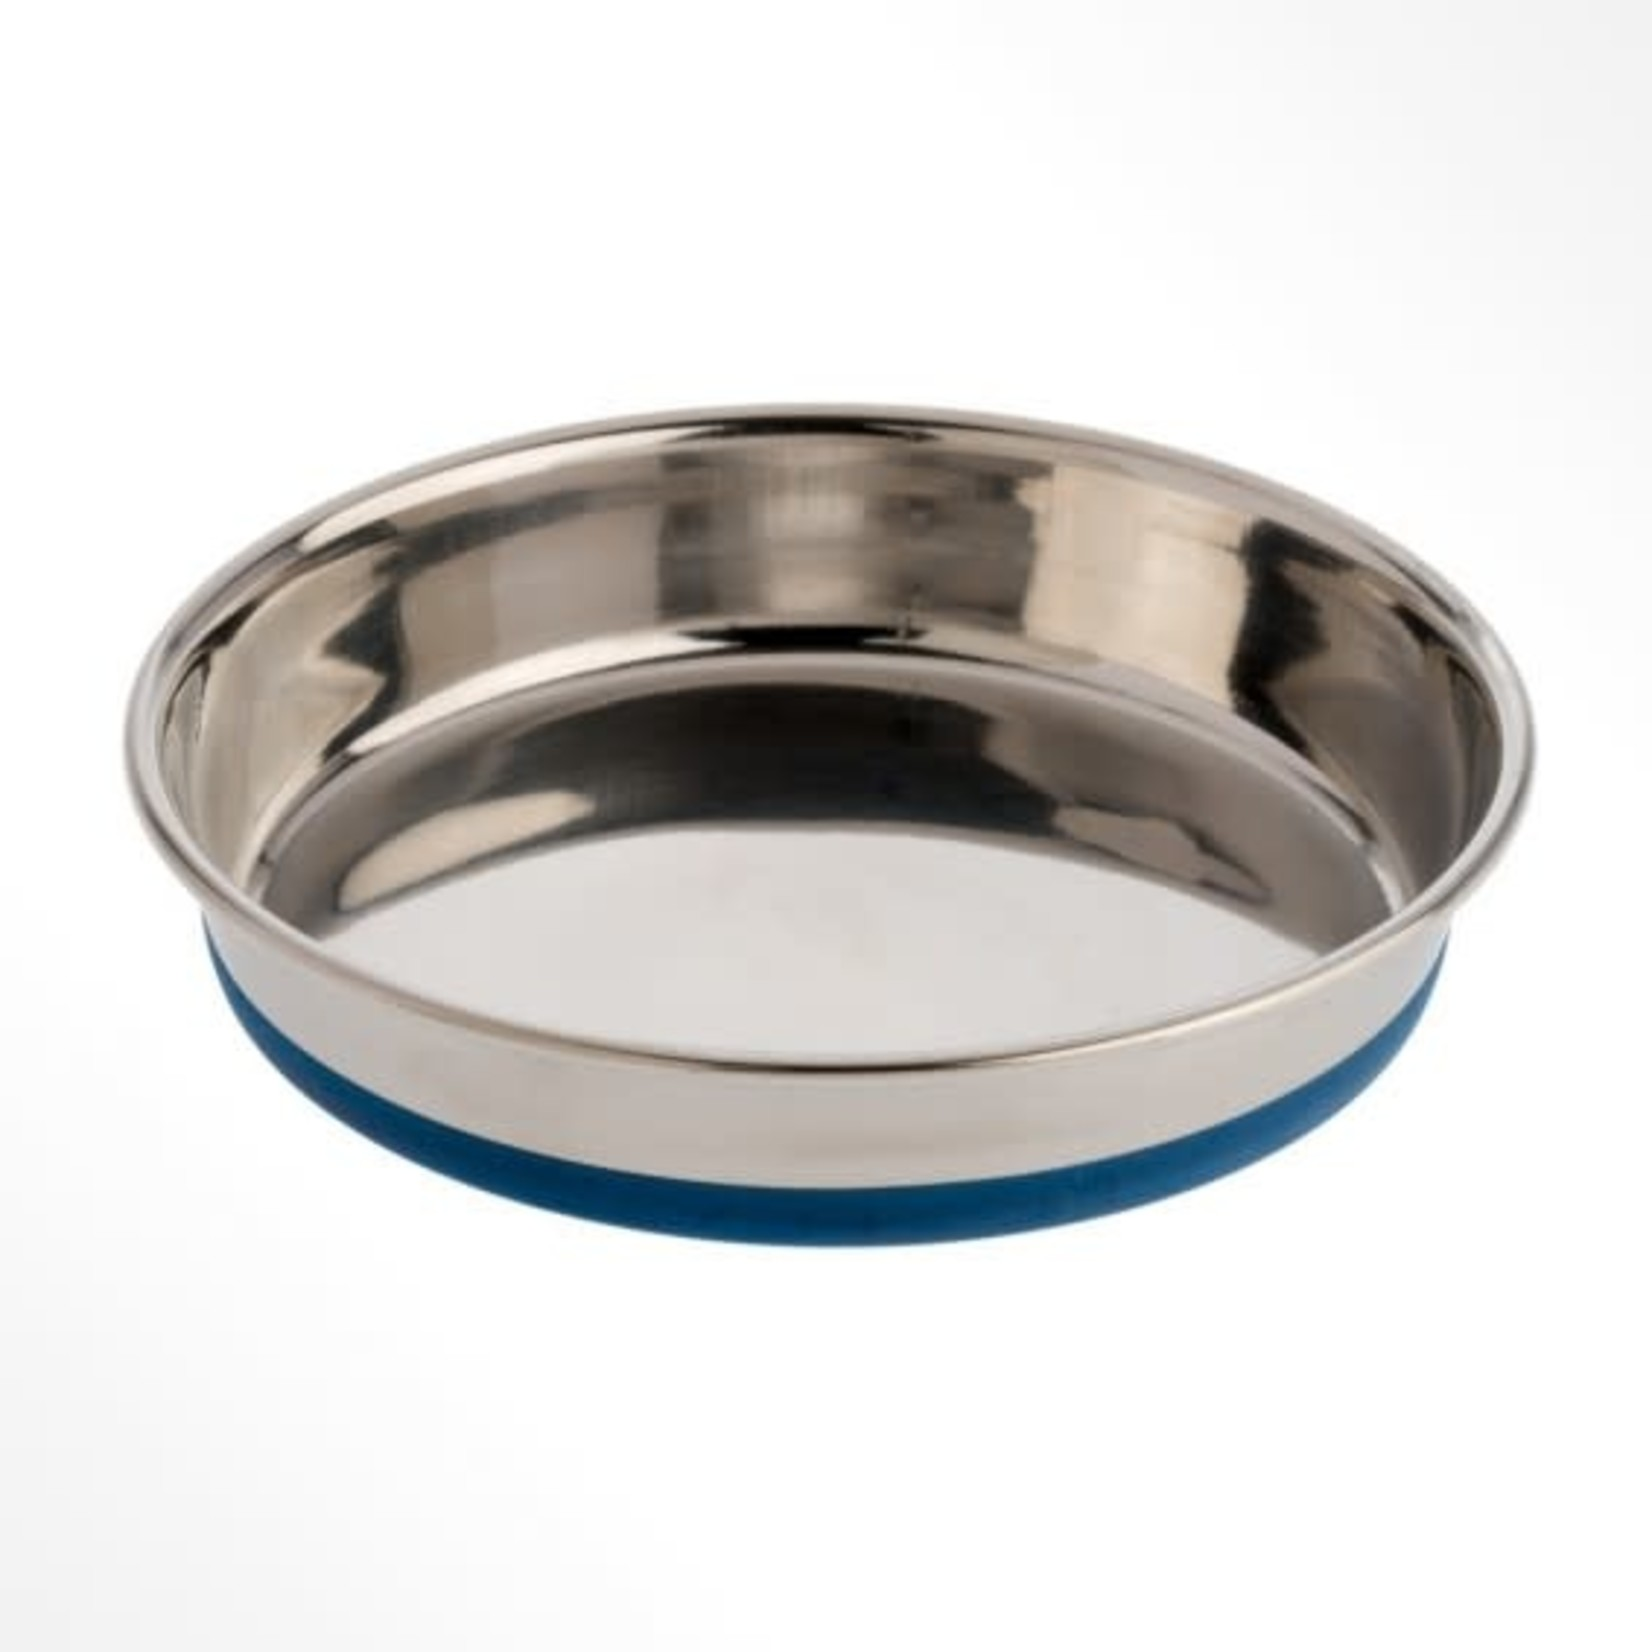 Our Pets Company Durapet Stainless Steel Bowl Cat Dish 12 OZ